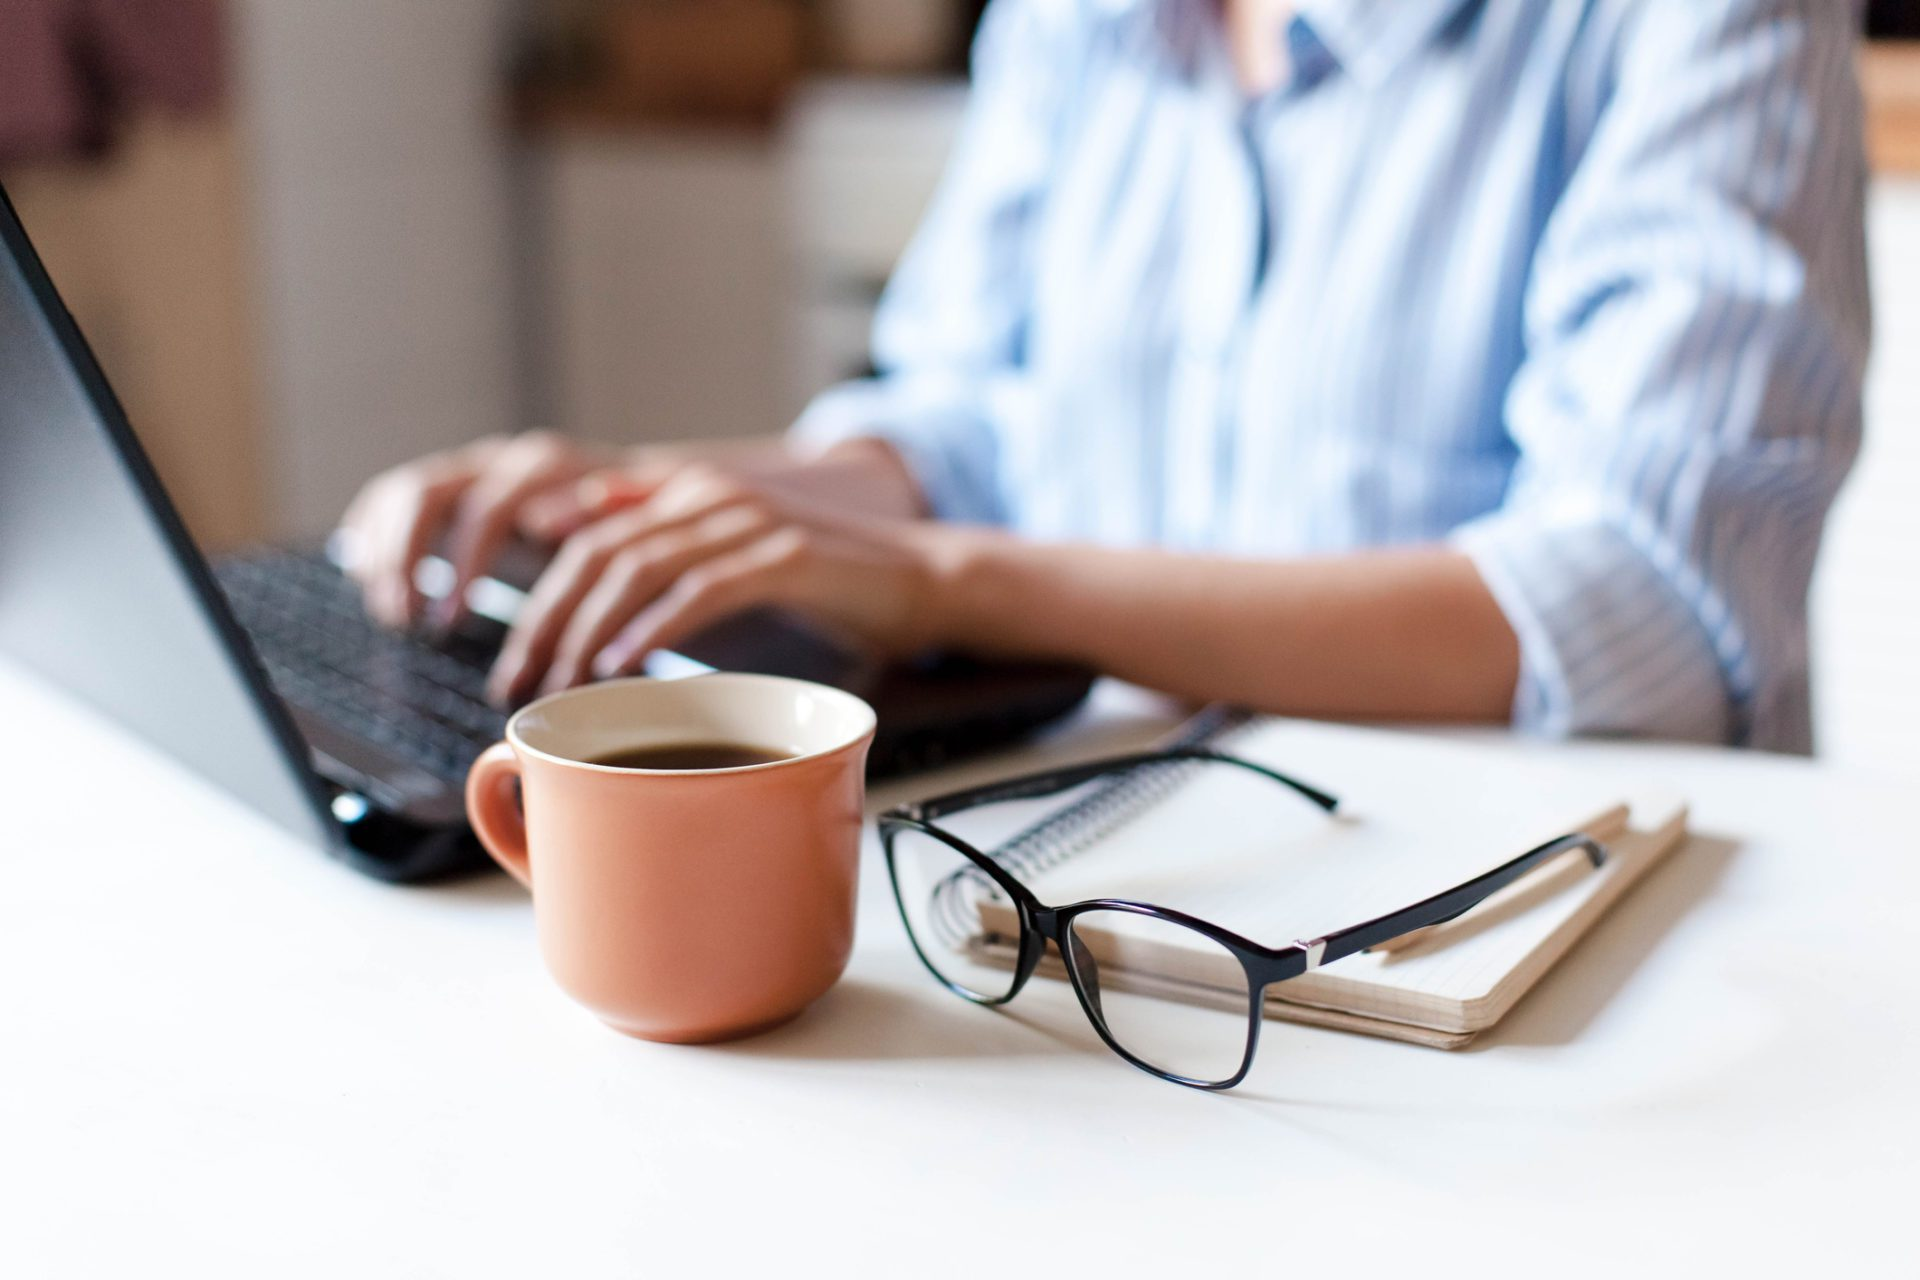 person working on laptop with coffee and glasses in foreground